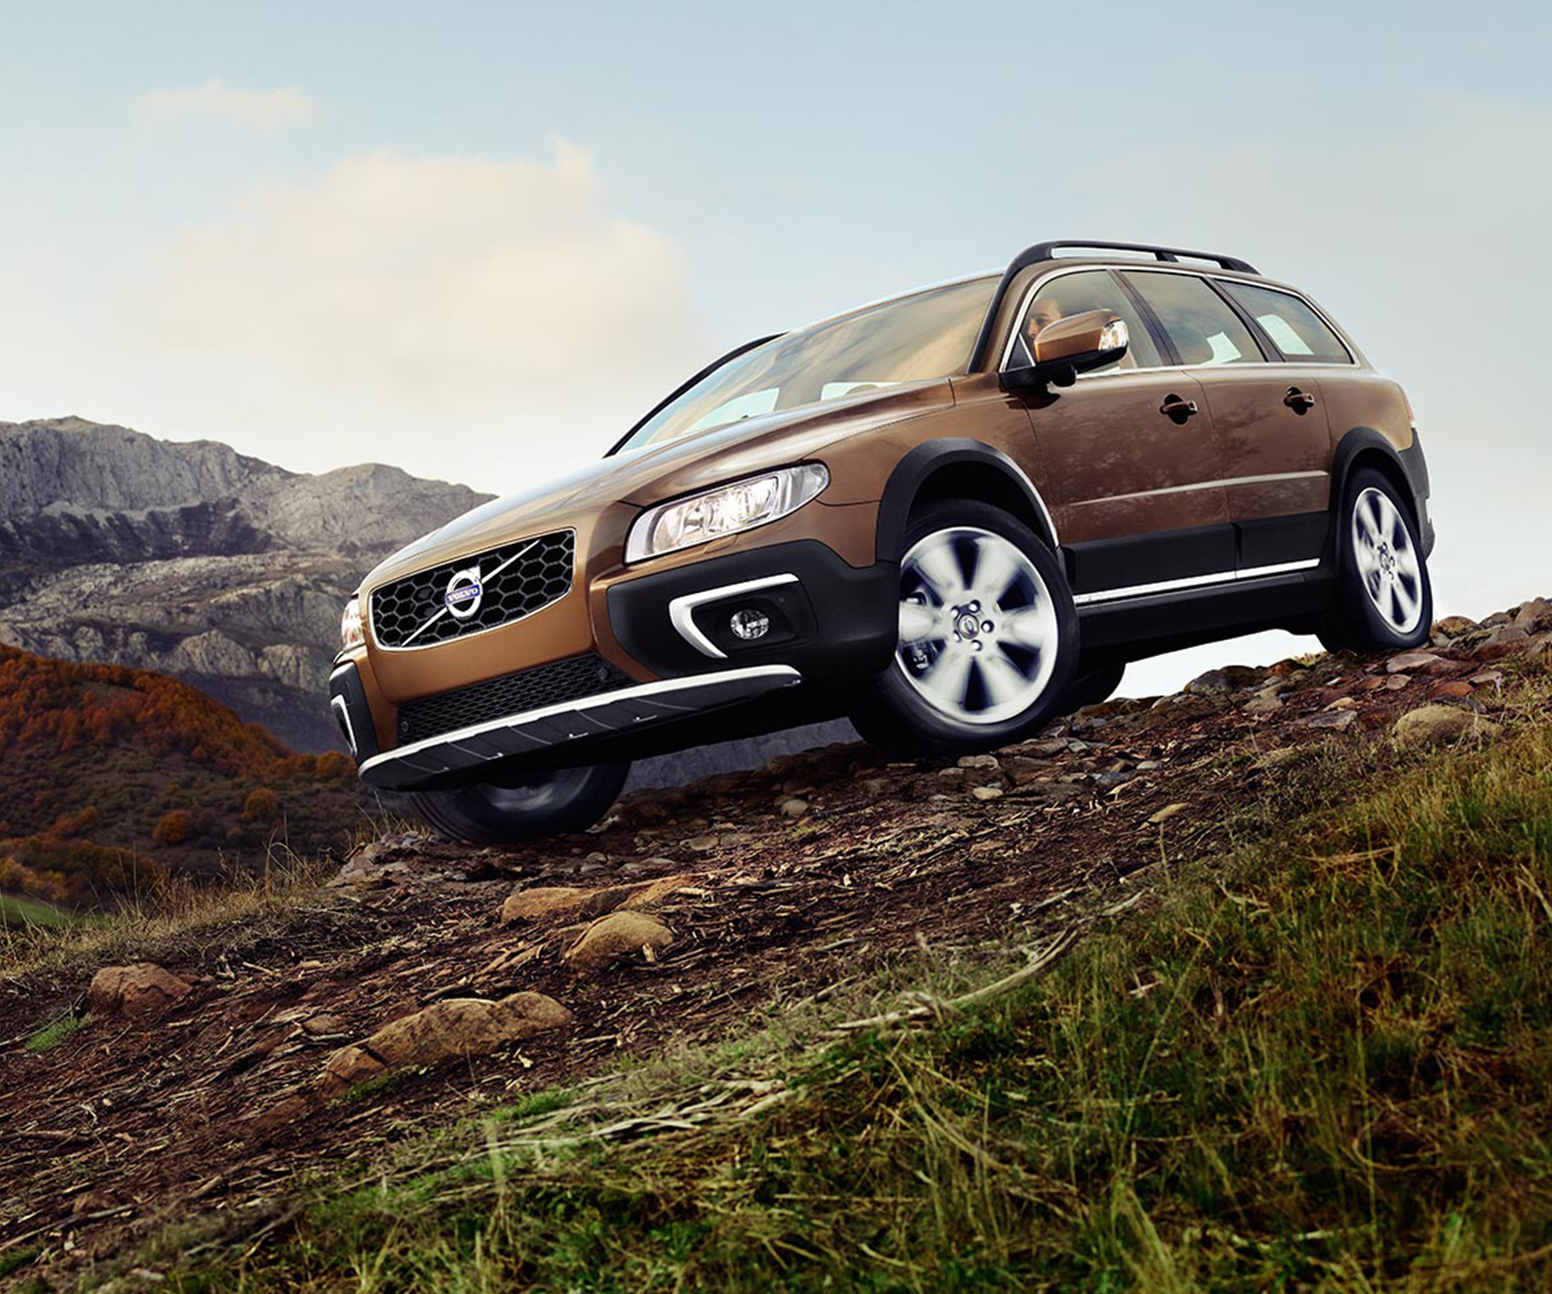 new volvo xc70 for sale in tamworth woodleys volvo. Black Bedroom Furniture Sets. Home Design Ideas